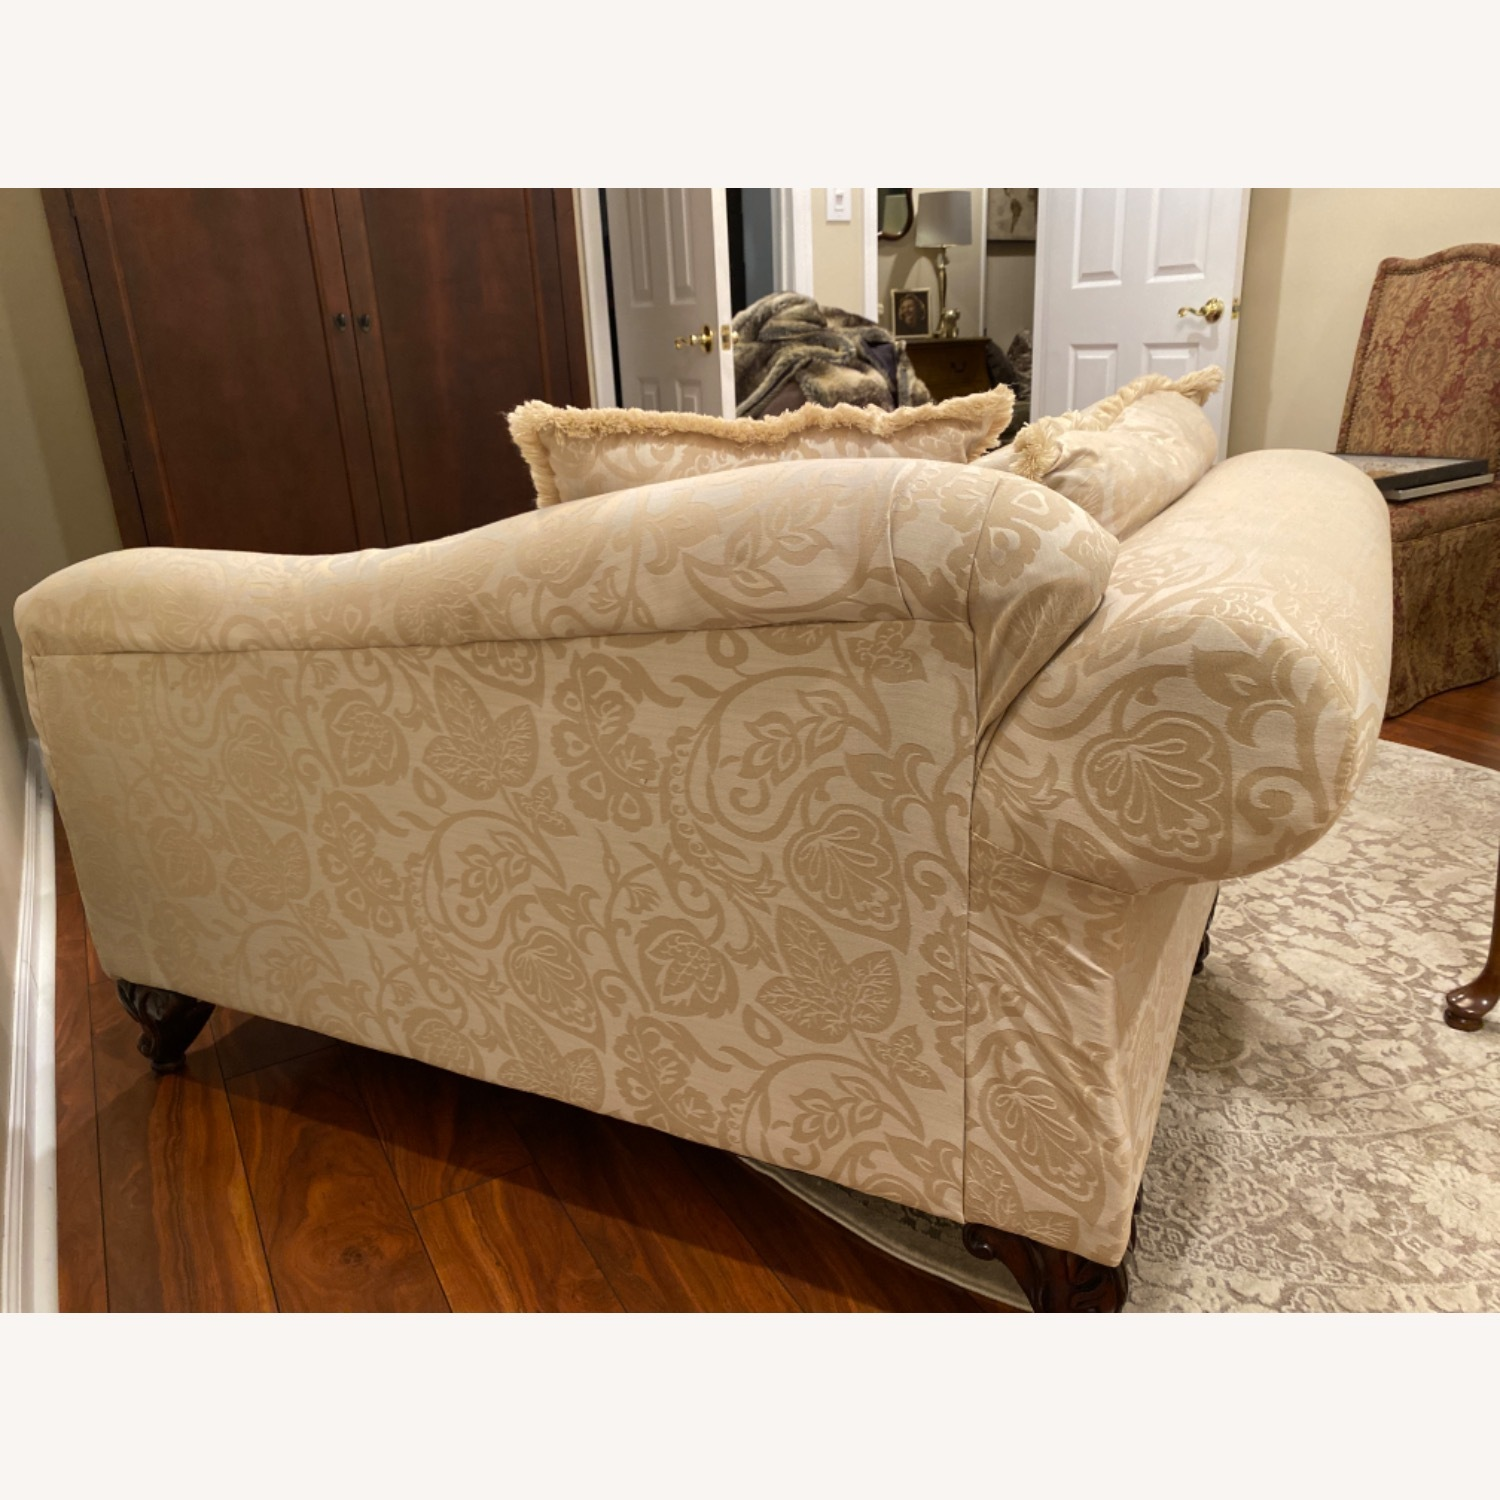 Broyhill Beige/Off White Chaise - image-4